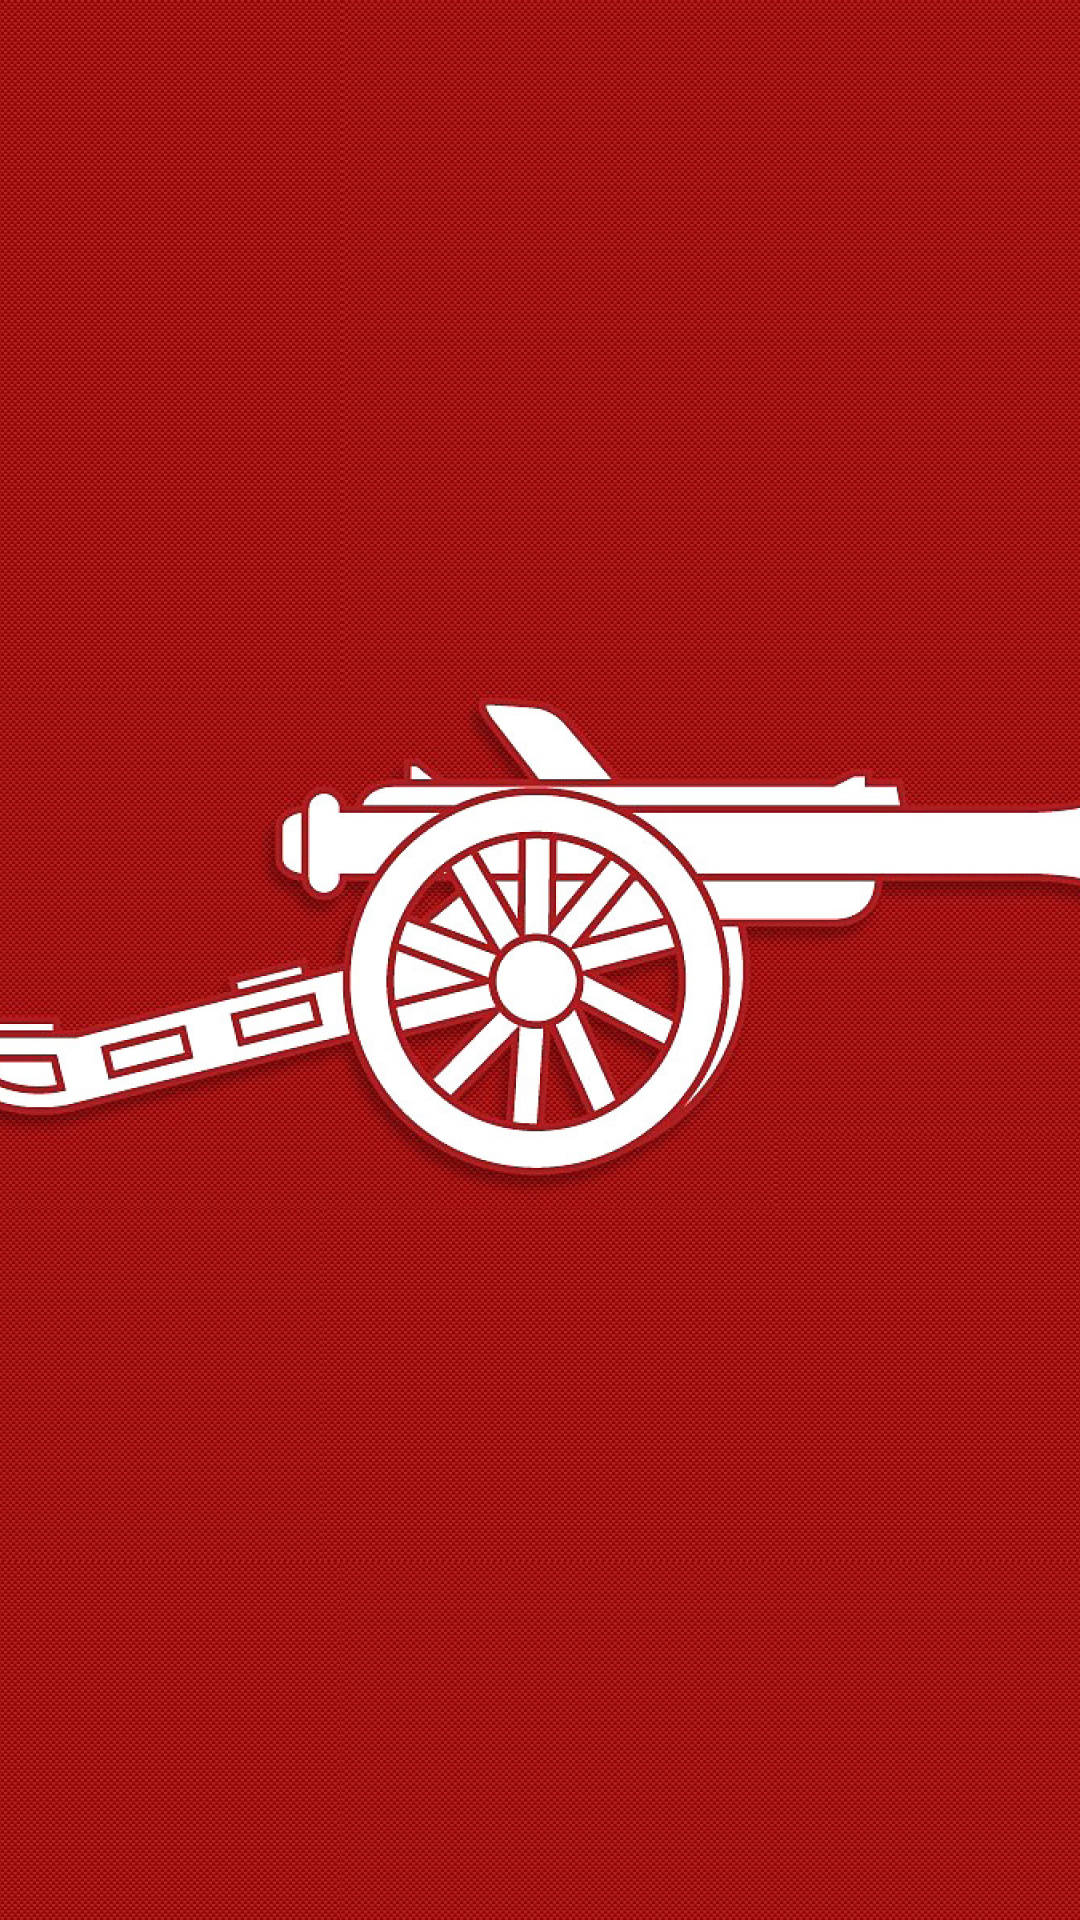 Arsenal Iphone Wallpaper Hd 2018 Iphone Wallpapers The